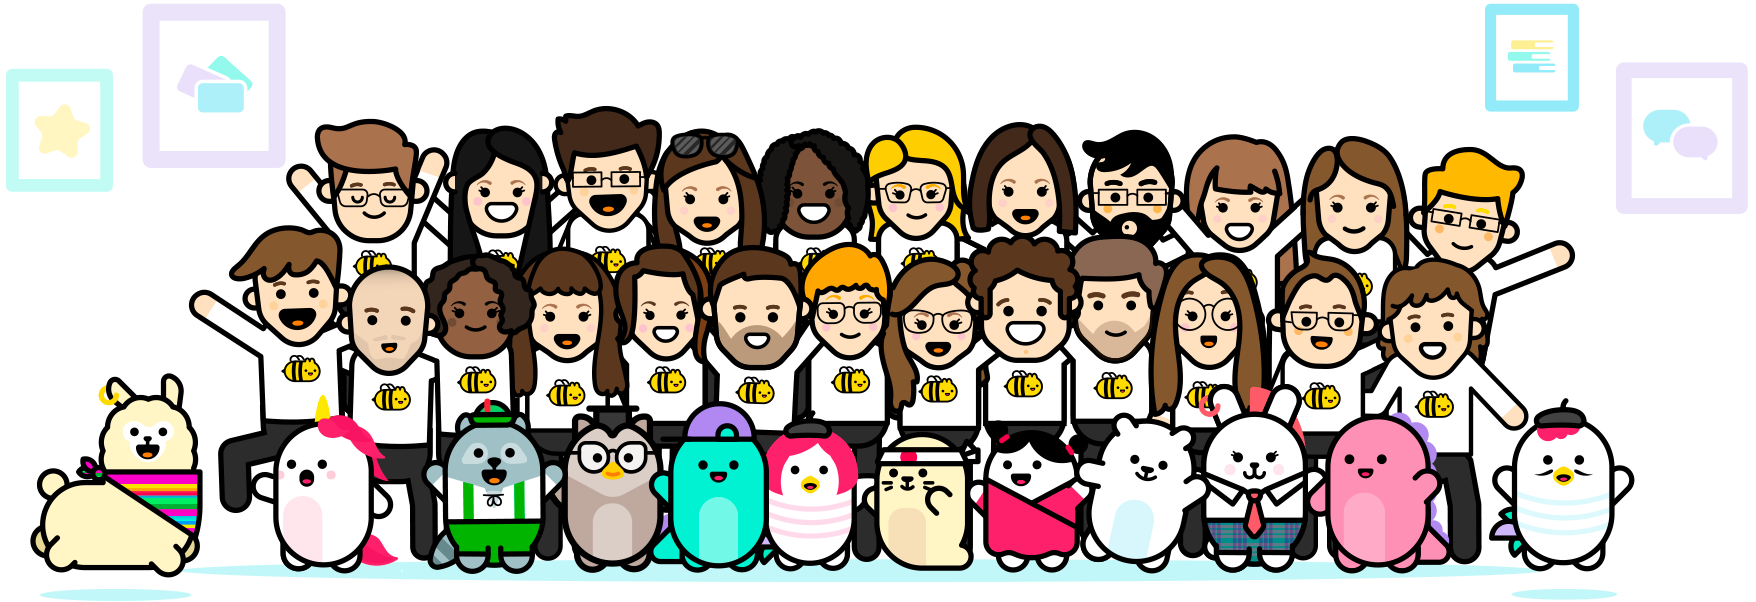 The Chatterbug Team